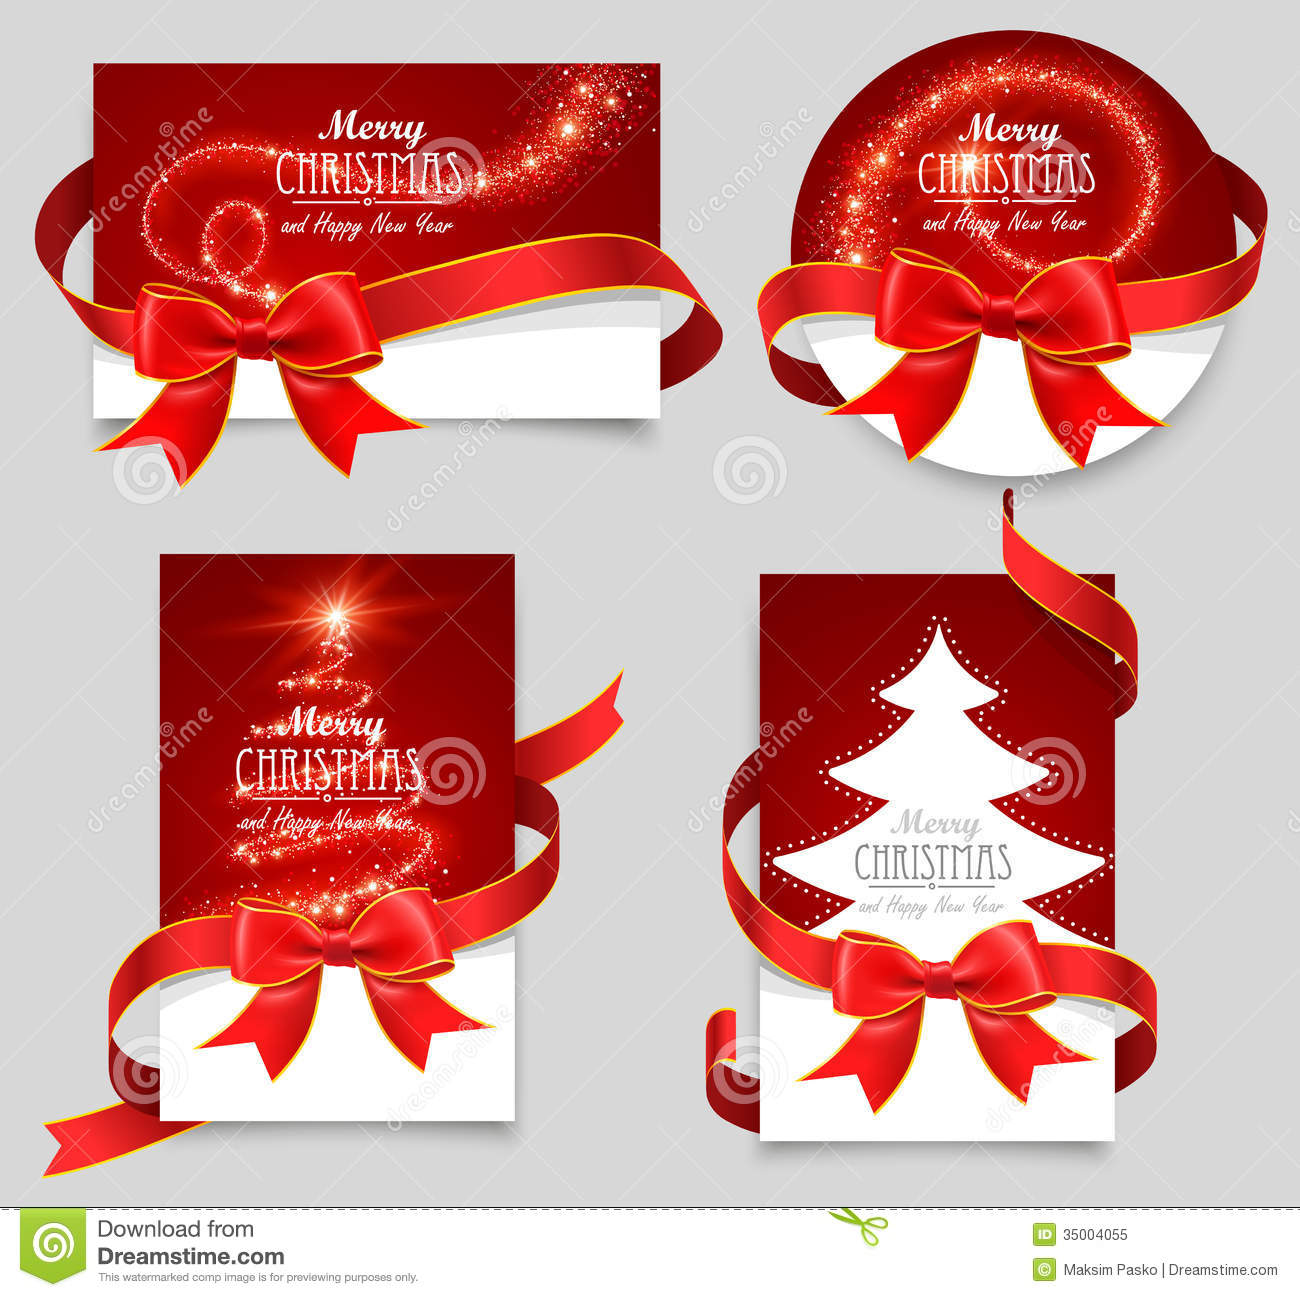 Gift Cards With Red Bows Royalty Free Stock Photo - Image: 35004055